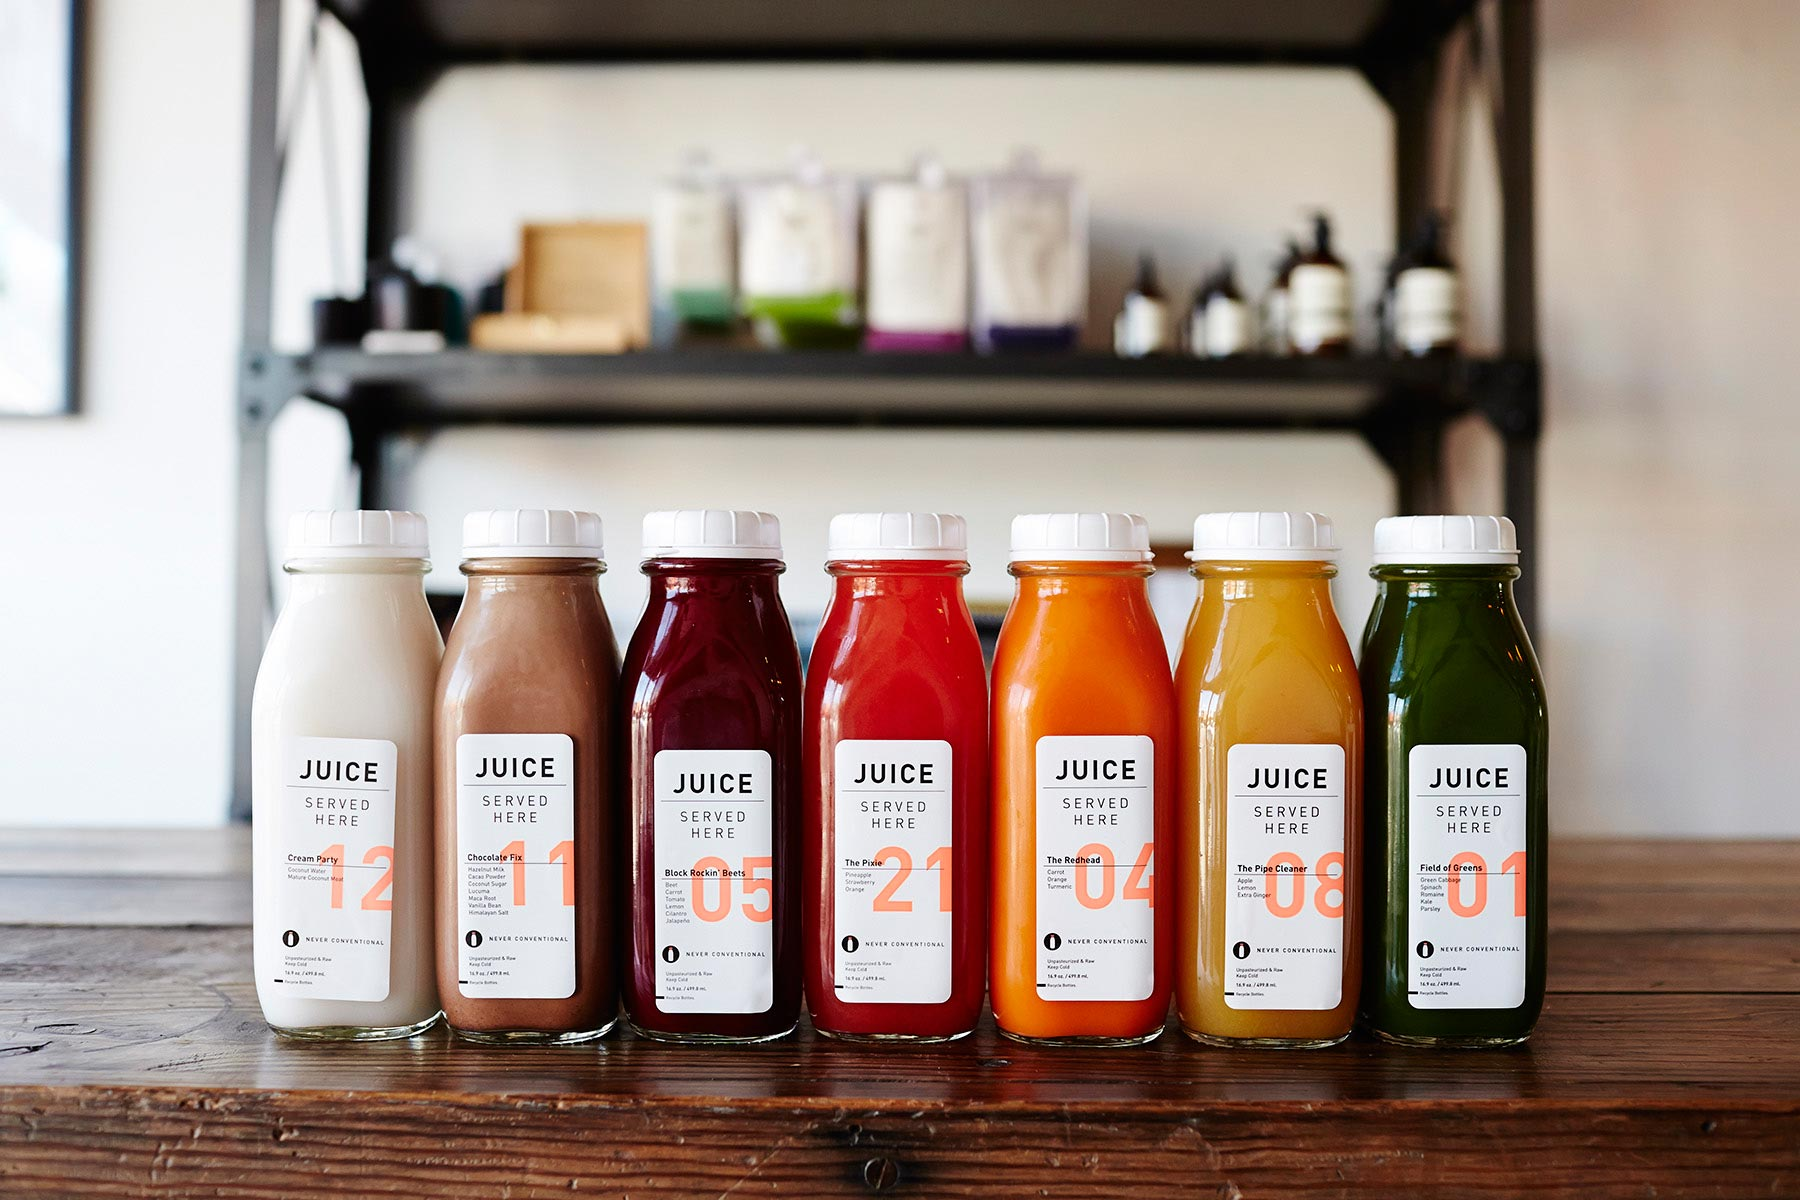 Image taken from www.juiceservedhere.com